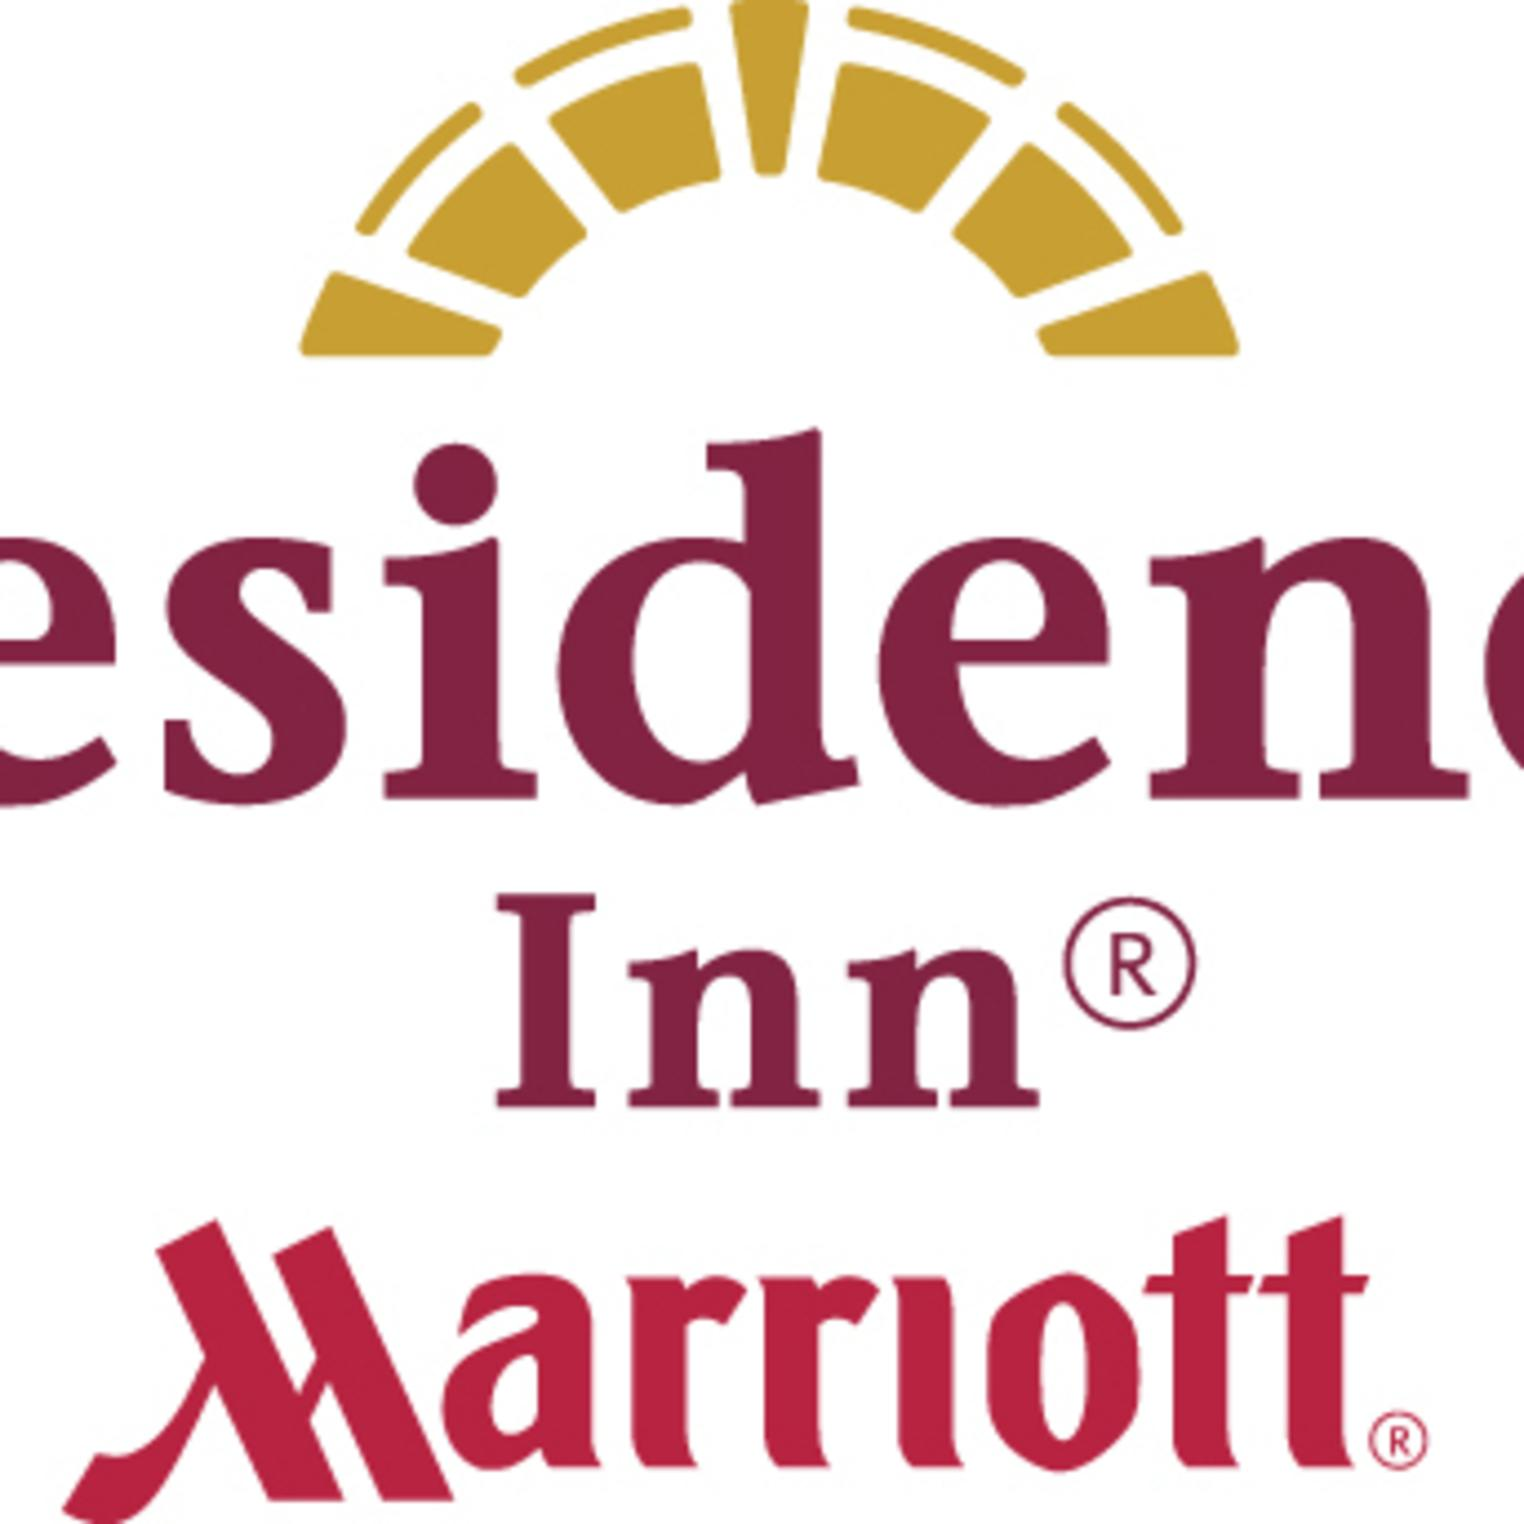 Residence Inn by Marriott Harrisburg Carlisle Logo